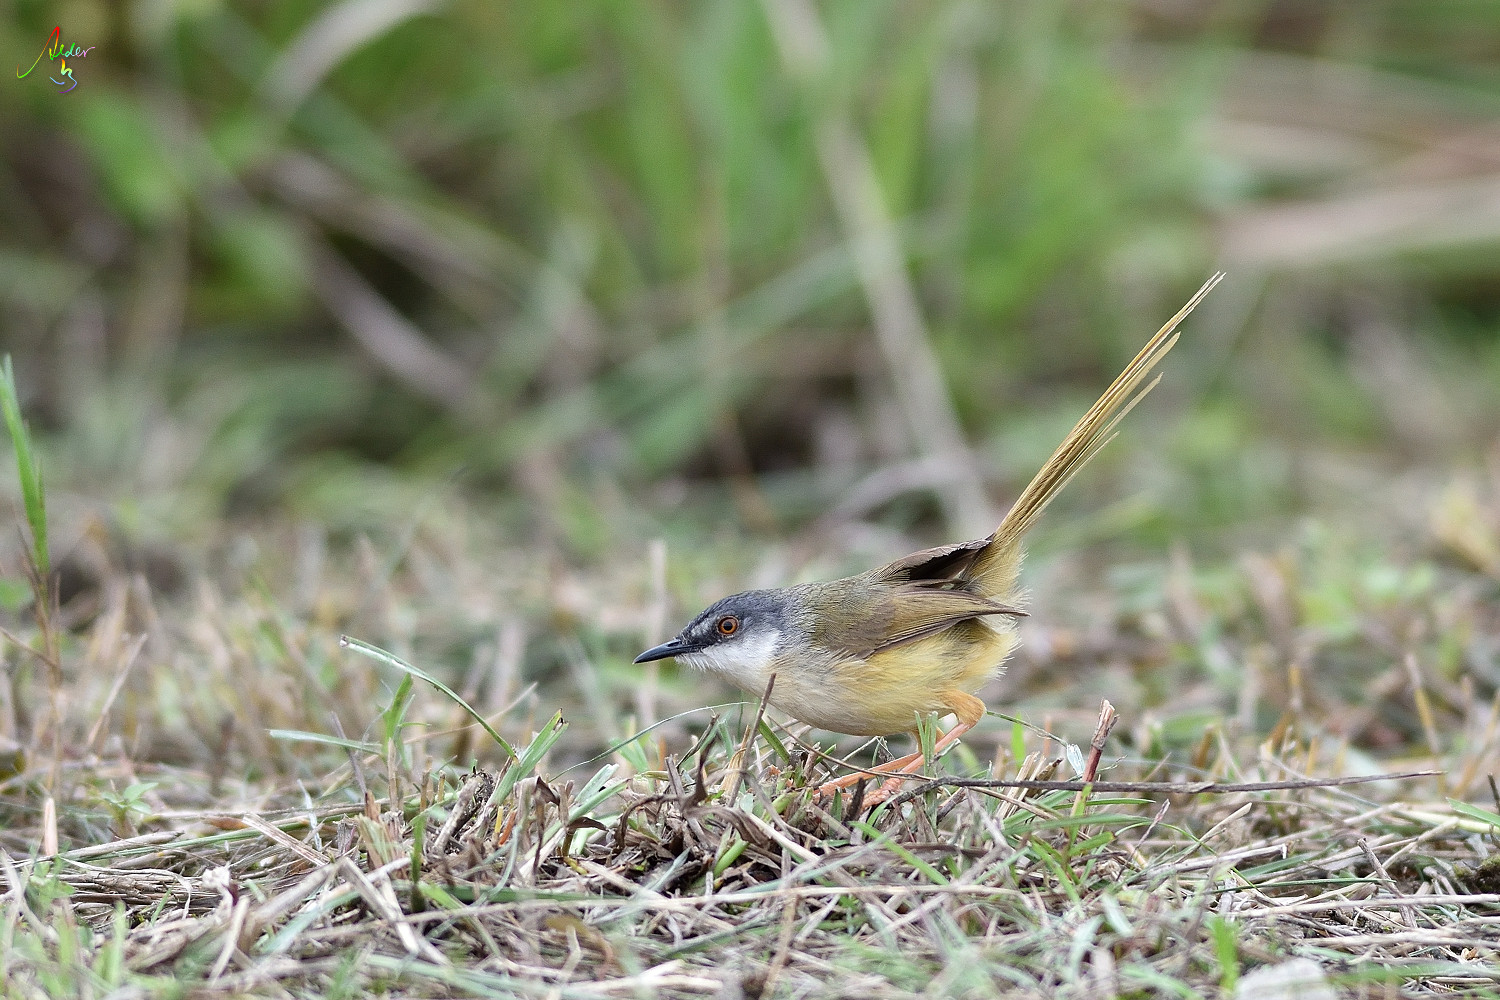 Yellow-bellied_Prinia_3661